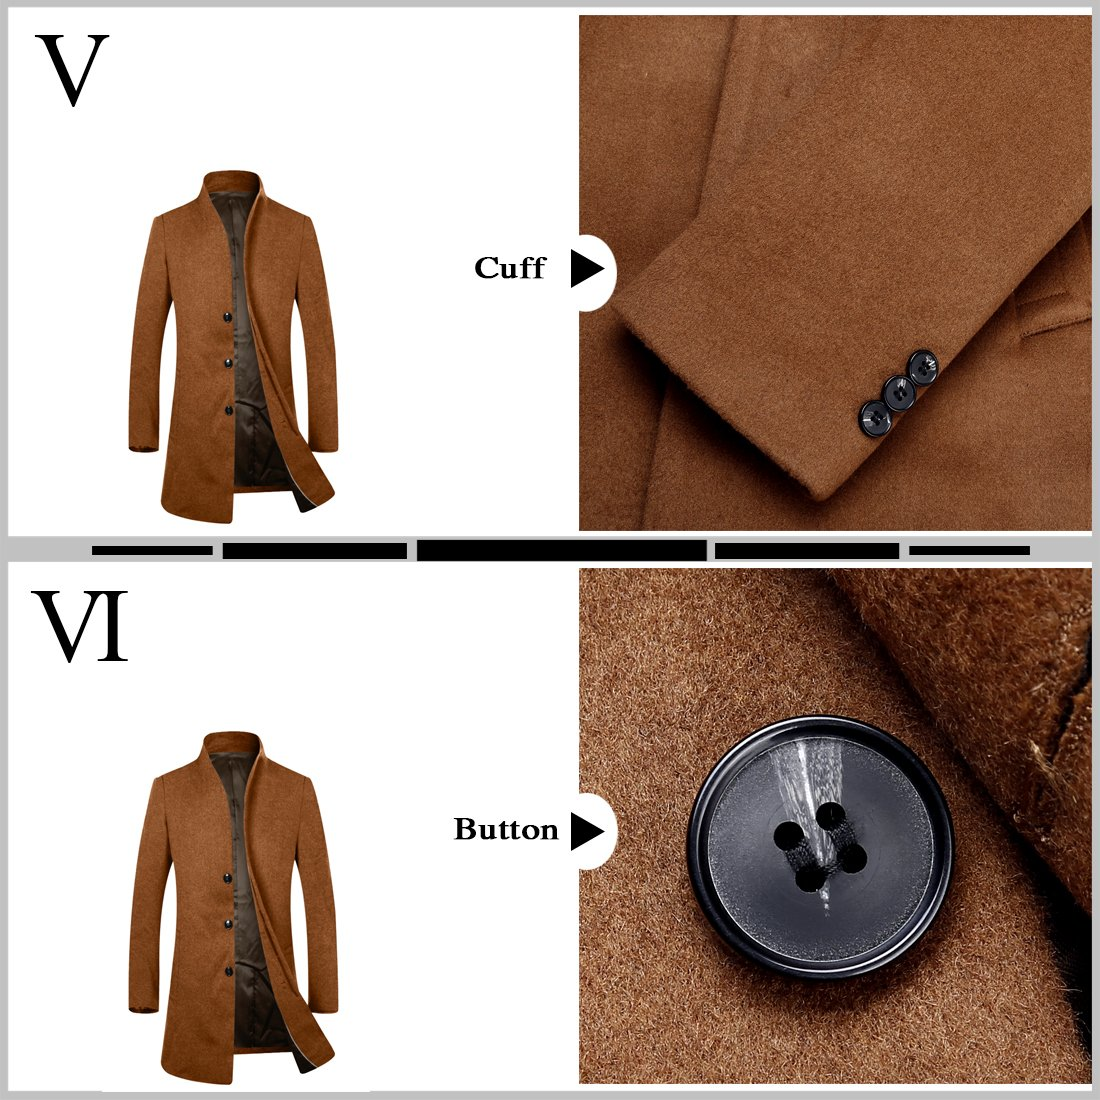 APTRO Men's Wool French Front Slim Fit Long Business Coat 1681 DZDY Camel S by APTRO (Image #4)